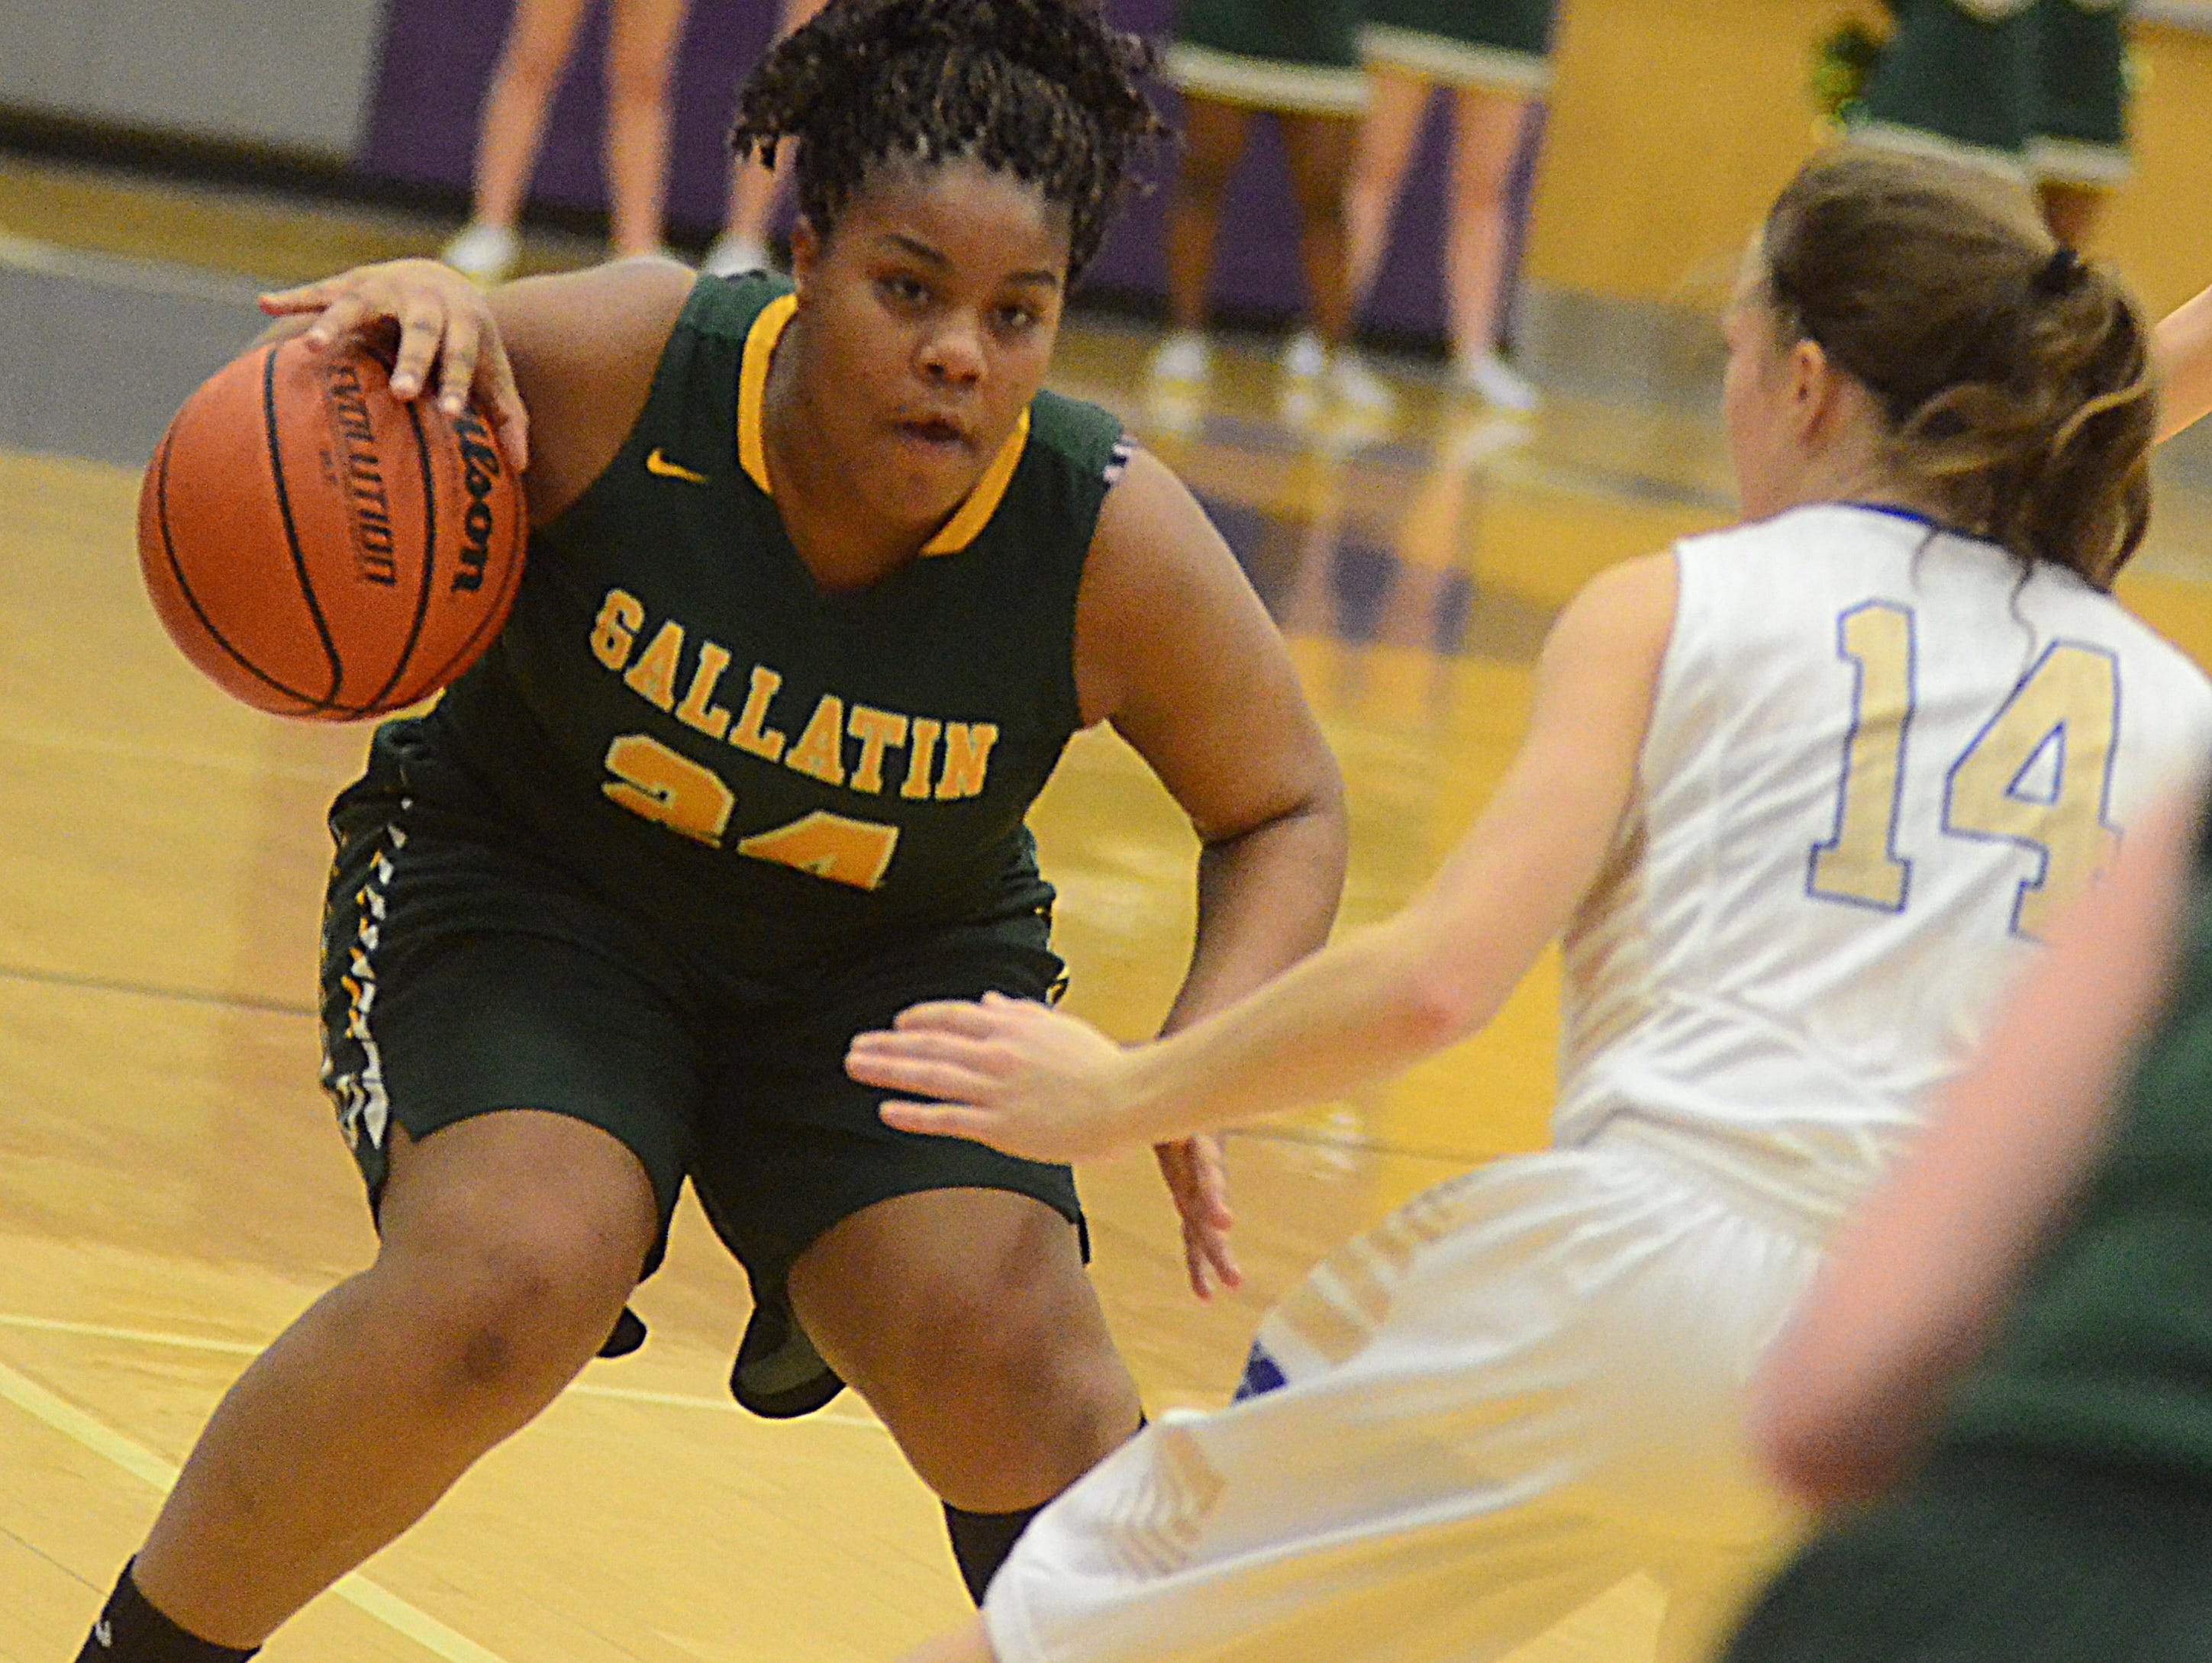 Gallatin High sophomore forward LaMonica Mintlow dribbles in the frontcourt as Wilson Central junior Anna Altman defends during first-quarter action.